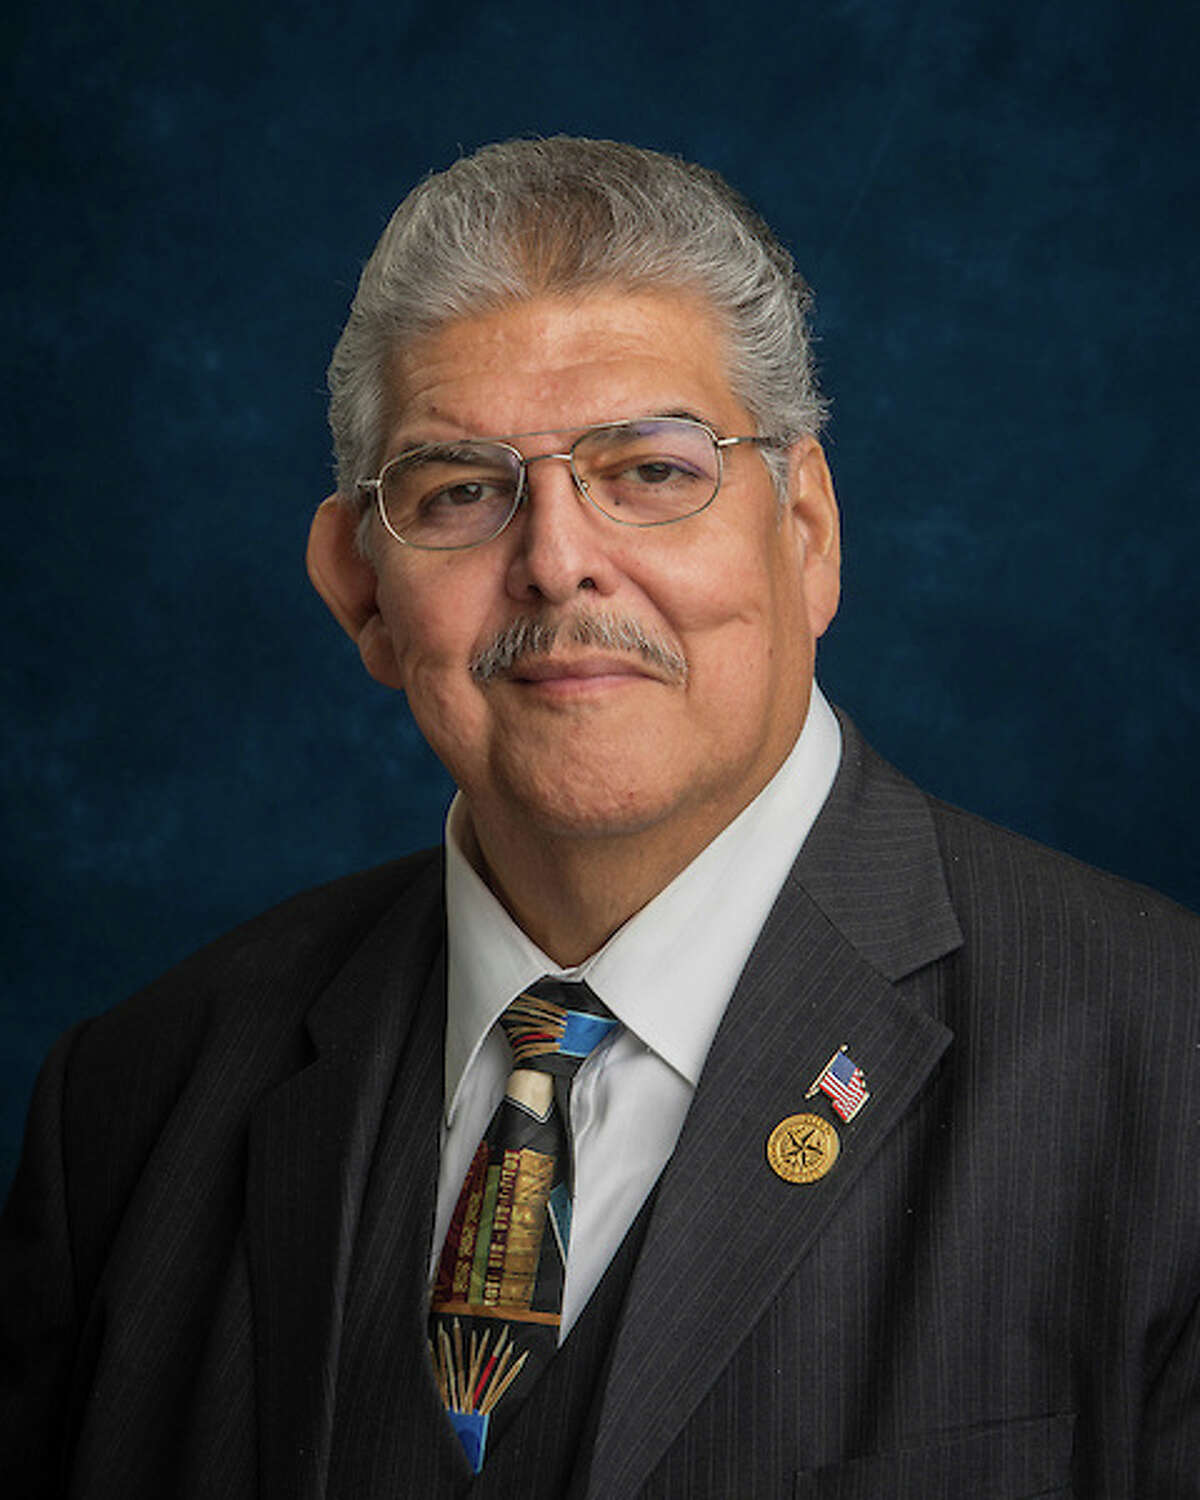 HISD Trustee Manuel Manny Rodriguez, Jr. served on the board from 2003 until his death on July 19, 2017.